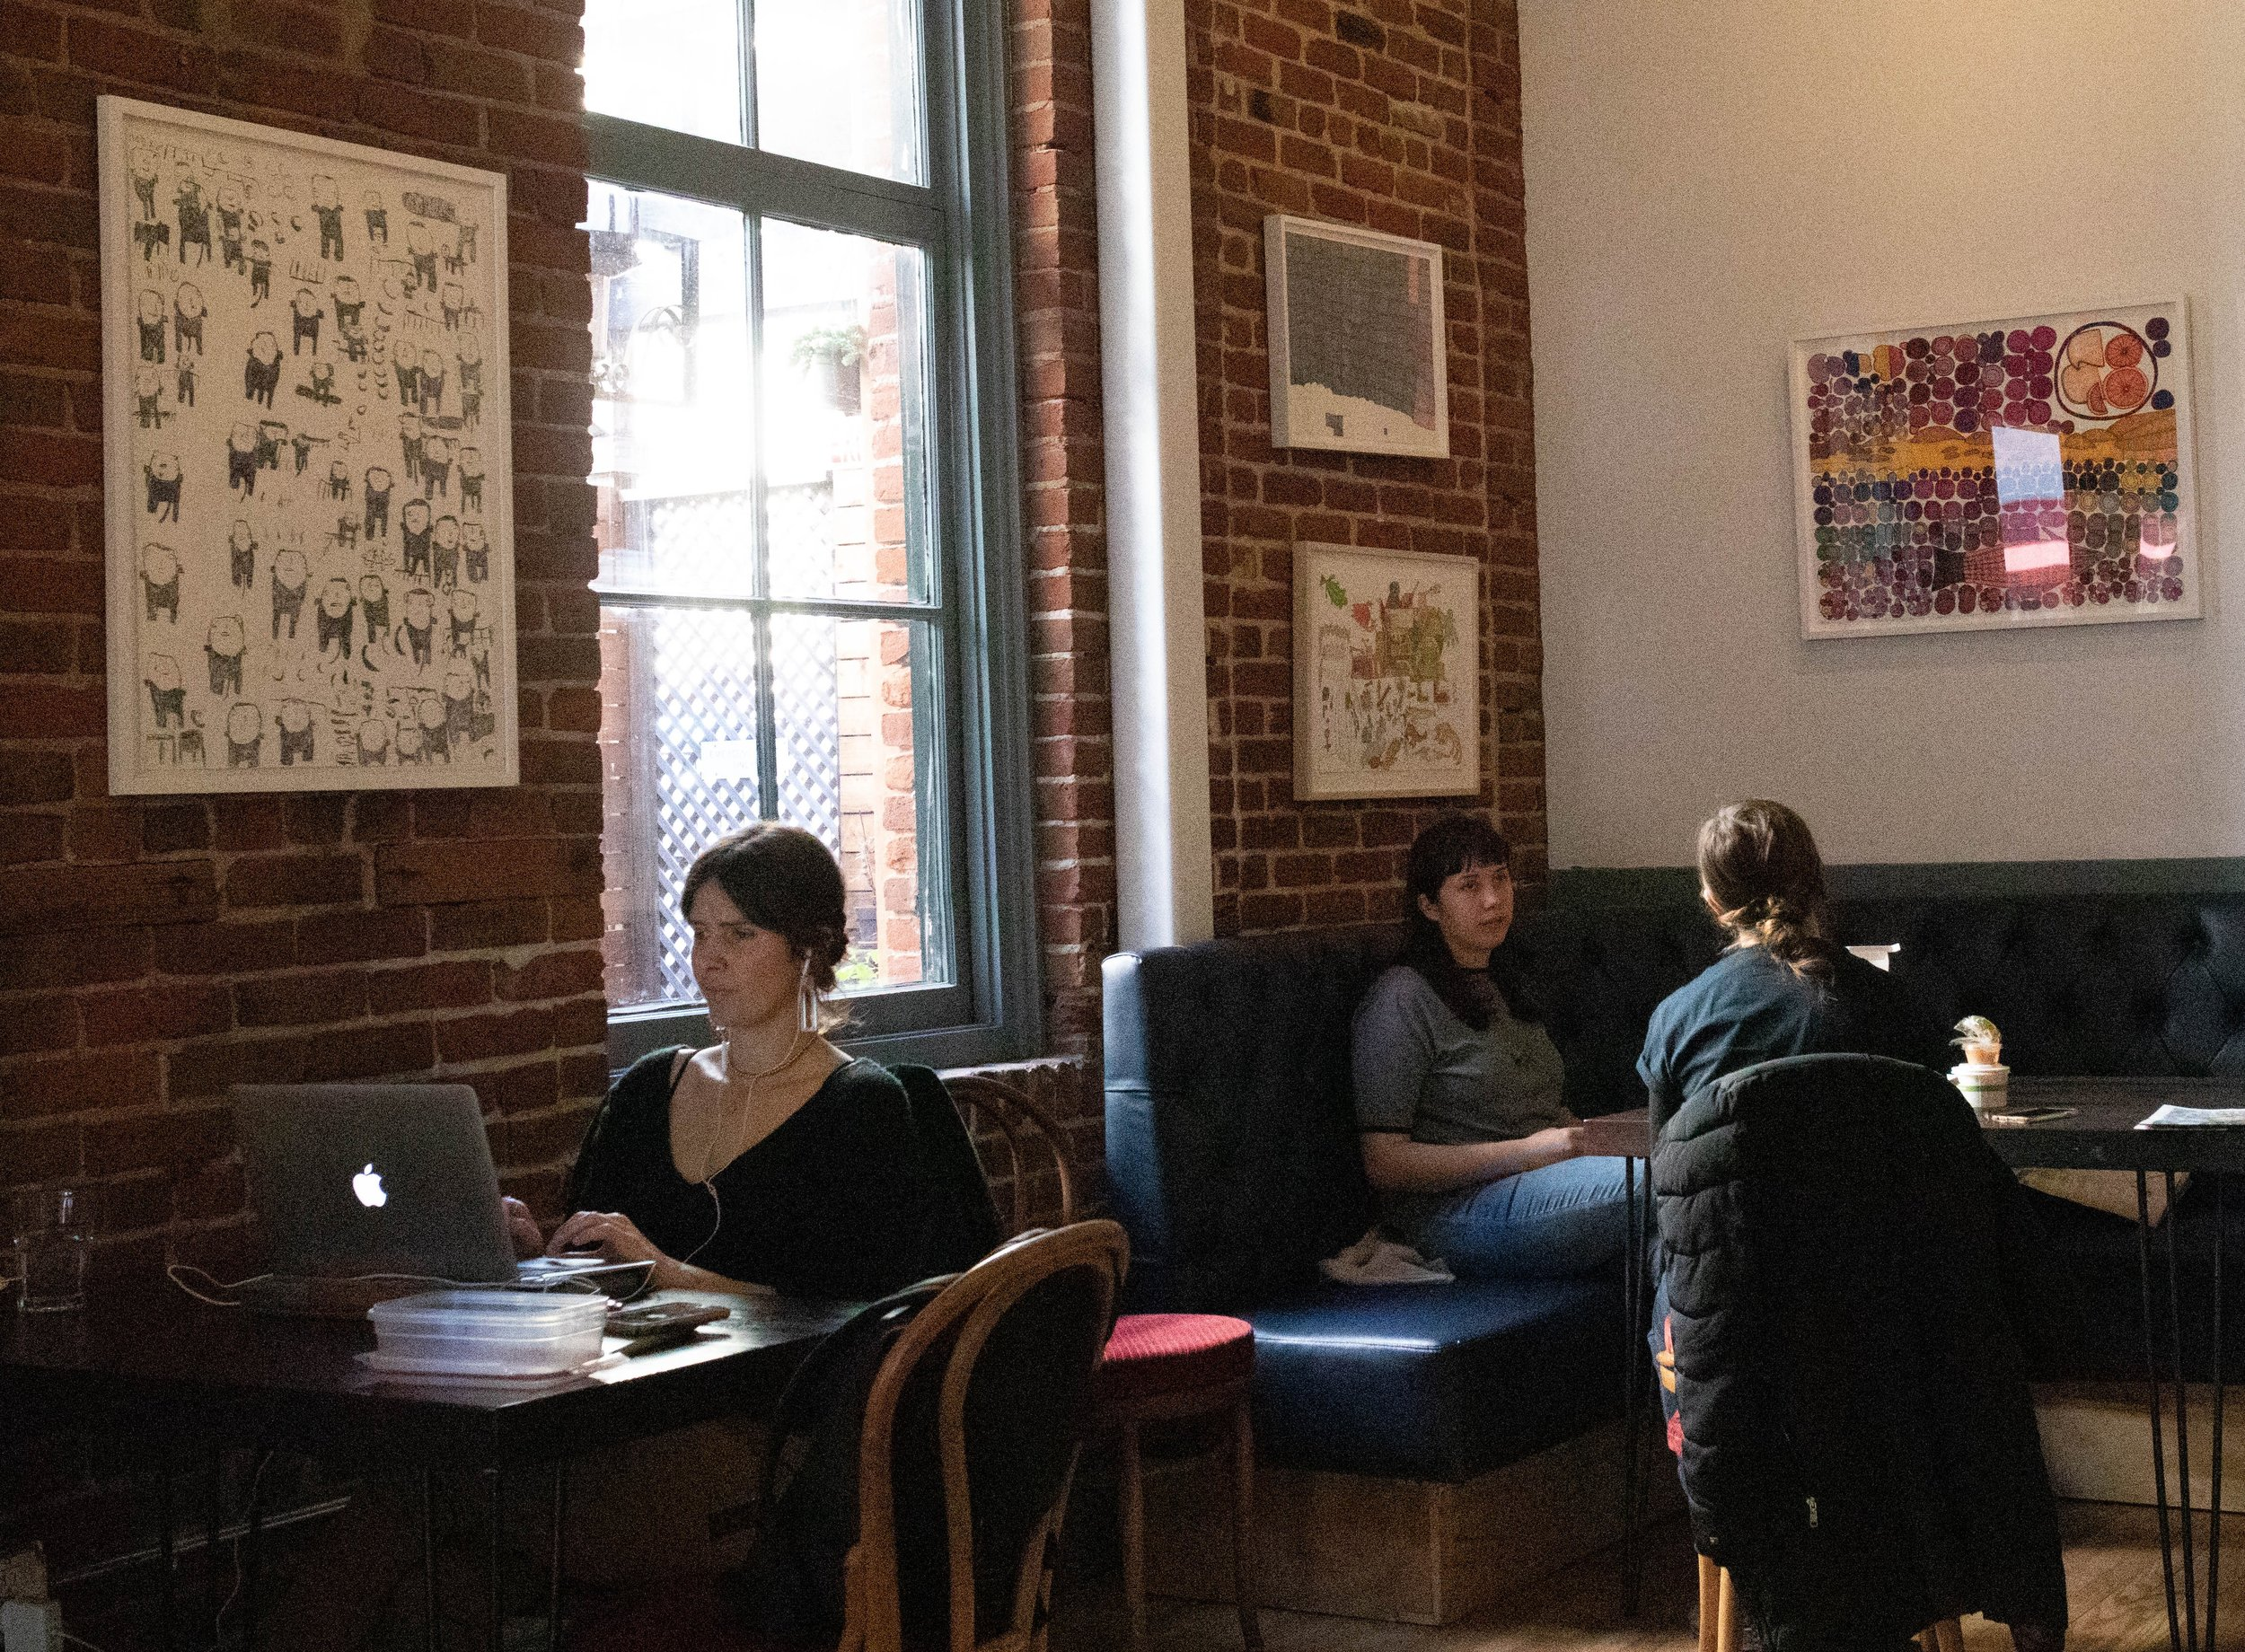 upstairs_2.jpg